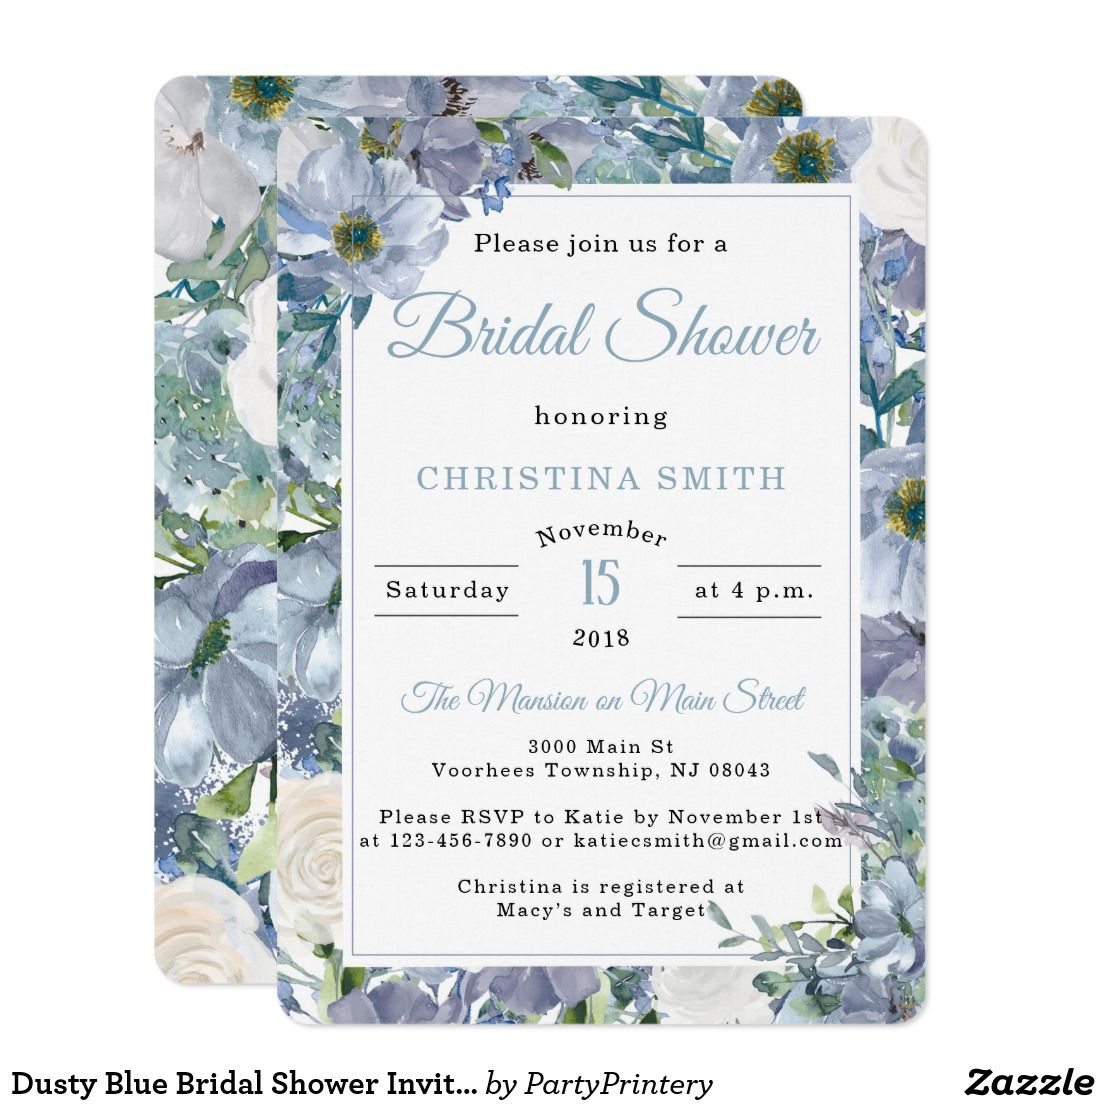 98844a788cce Dusty Blue Bridal Shower Invitations